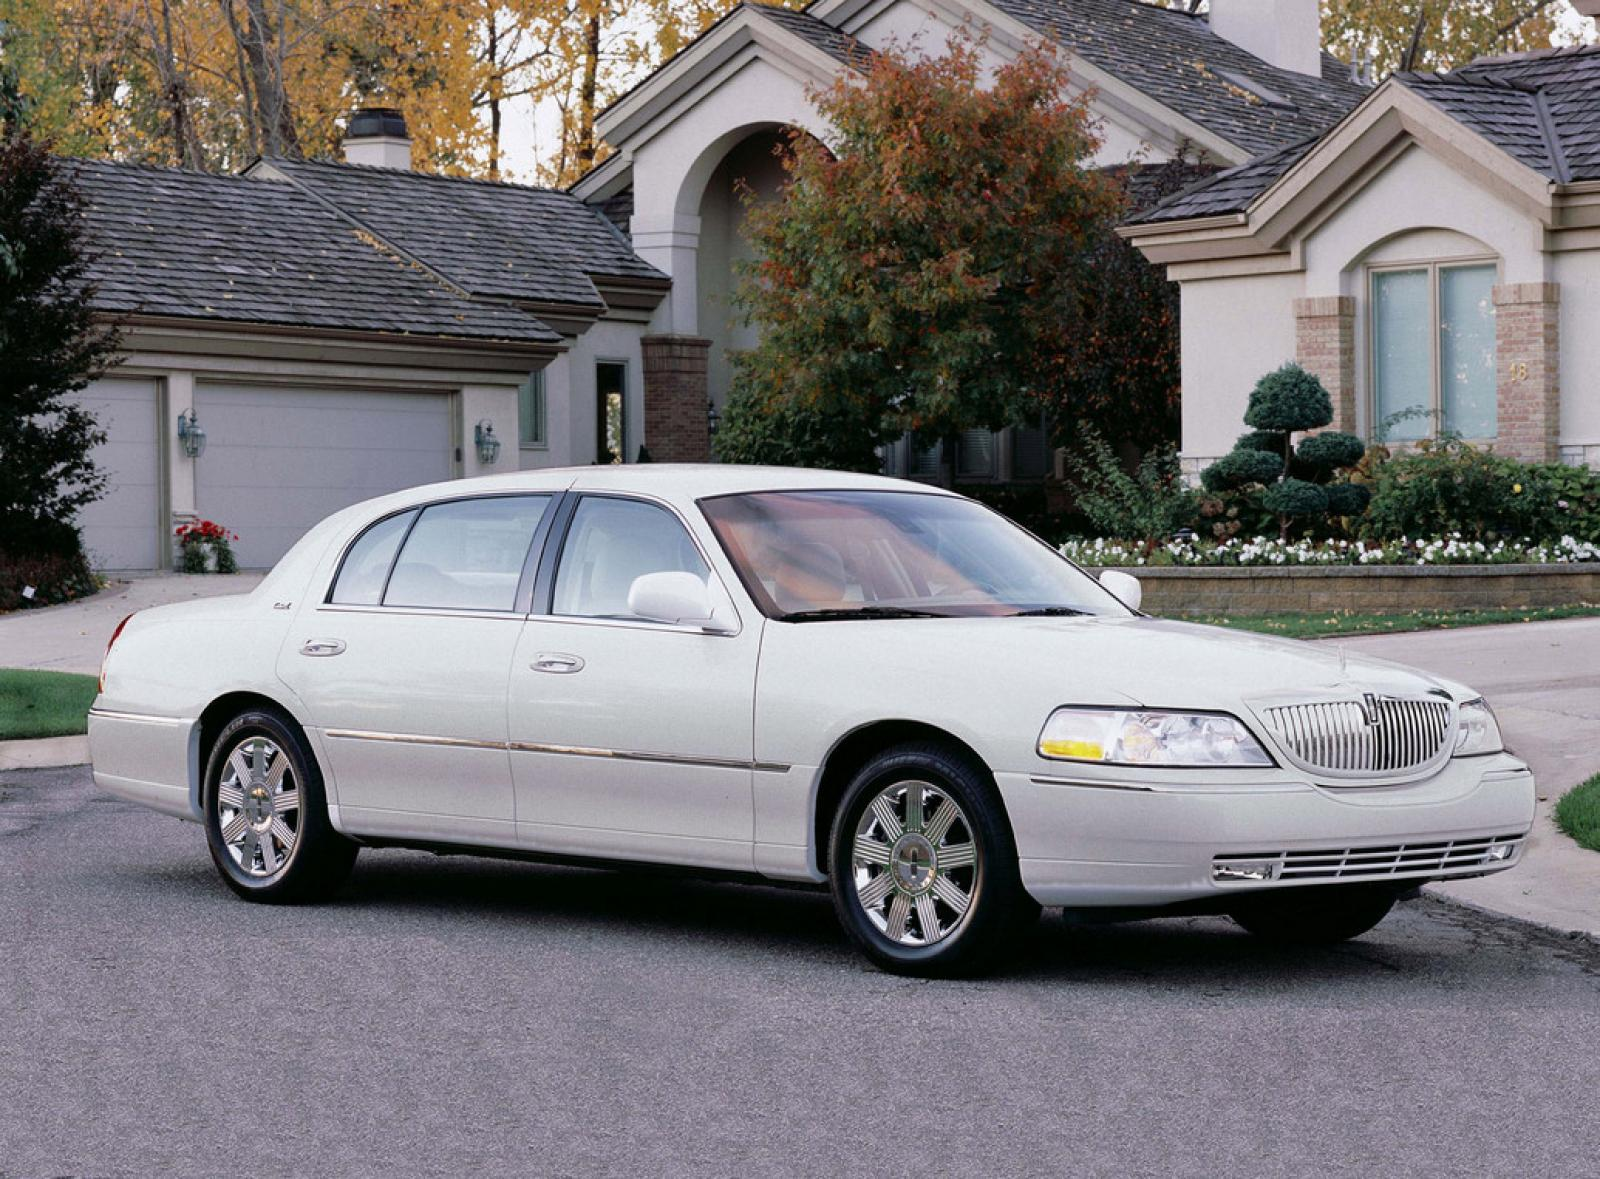 2011 lincoln town car information and photos zombiedrive. Black Bedroom Furniture Sets. Home Design Ideas